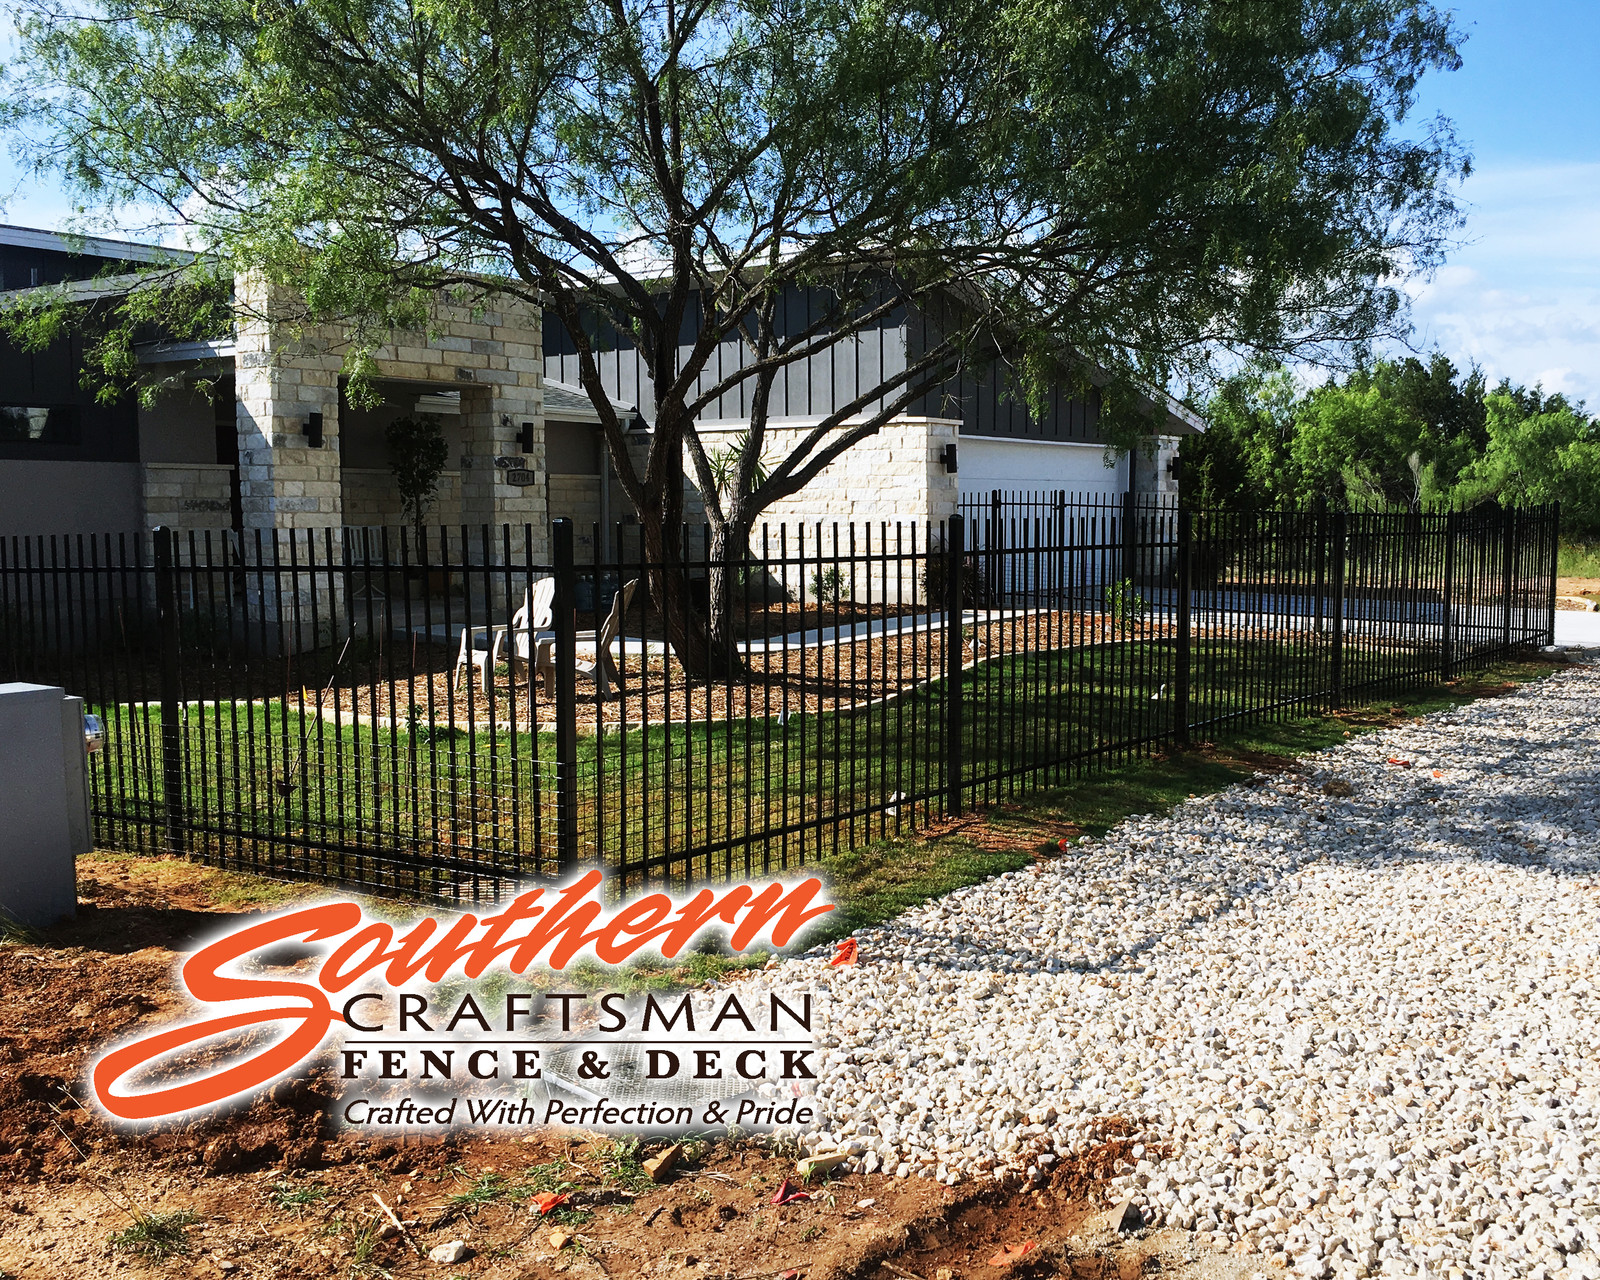 Ornamental Iron Fences